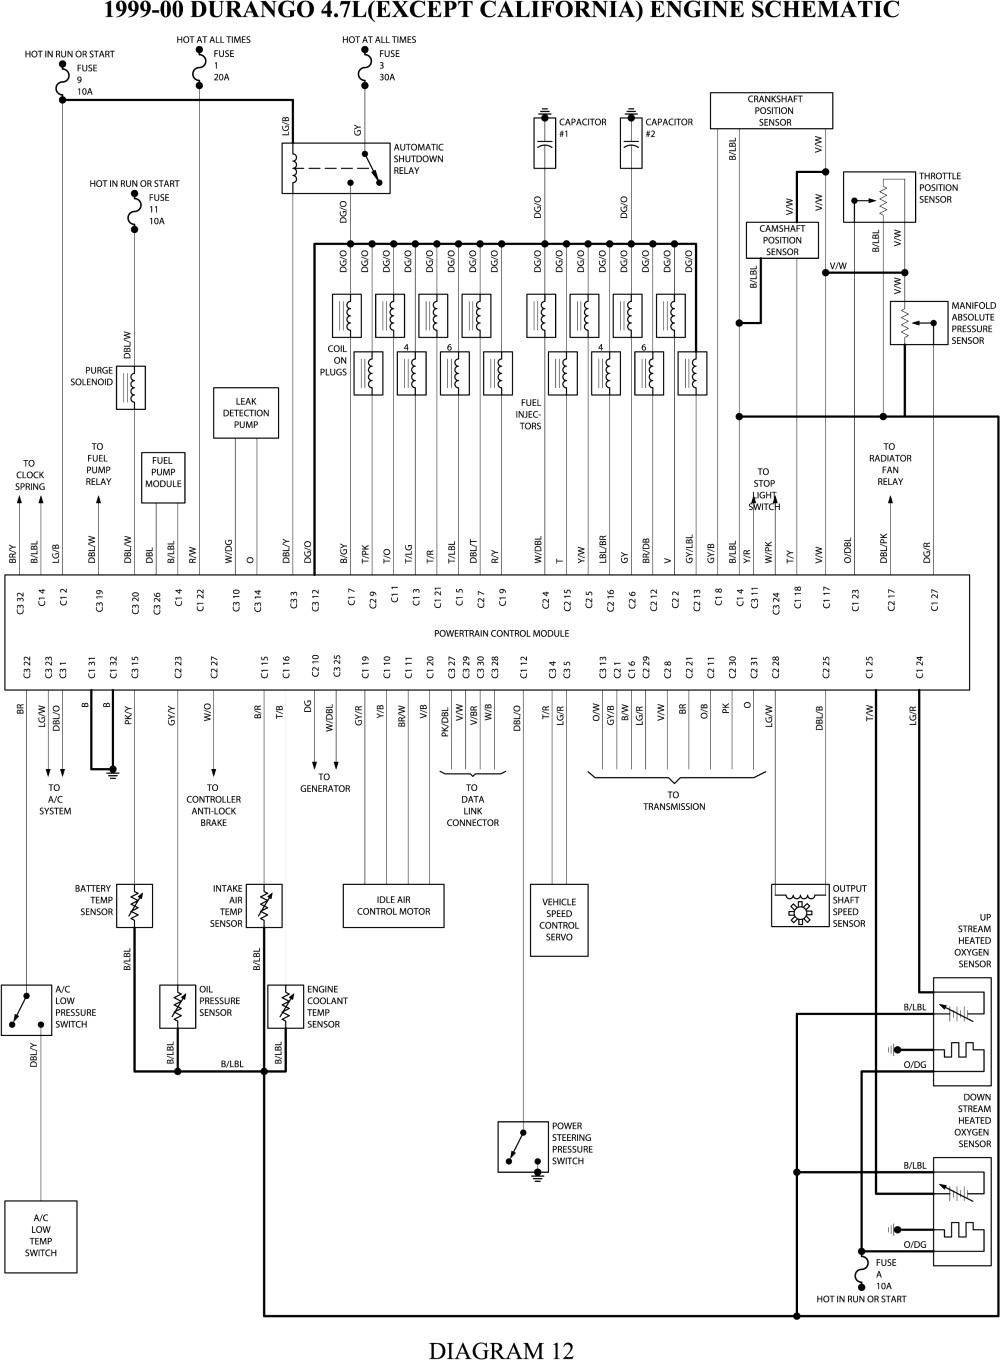 [DIAGRAM_5UK]  2002 Dodge Ram Wiring Schematic - Florida Building Wiring Diagram for Wiring  Diagram Schematics | 2008 Dodge Ram 1500 Wiring Schematic |  | Wiring Diagram Schematics